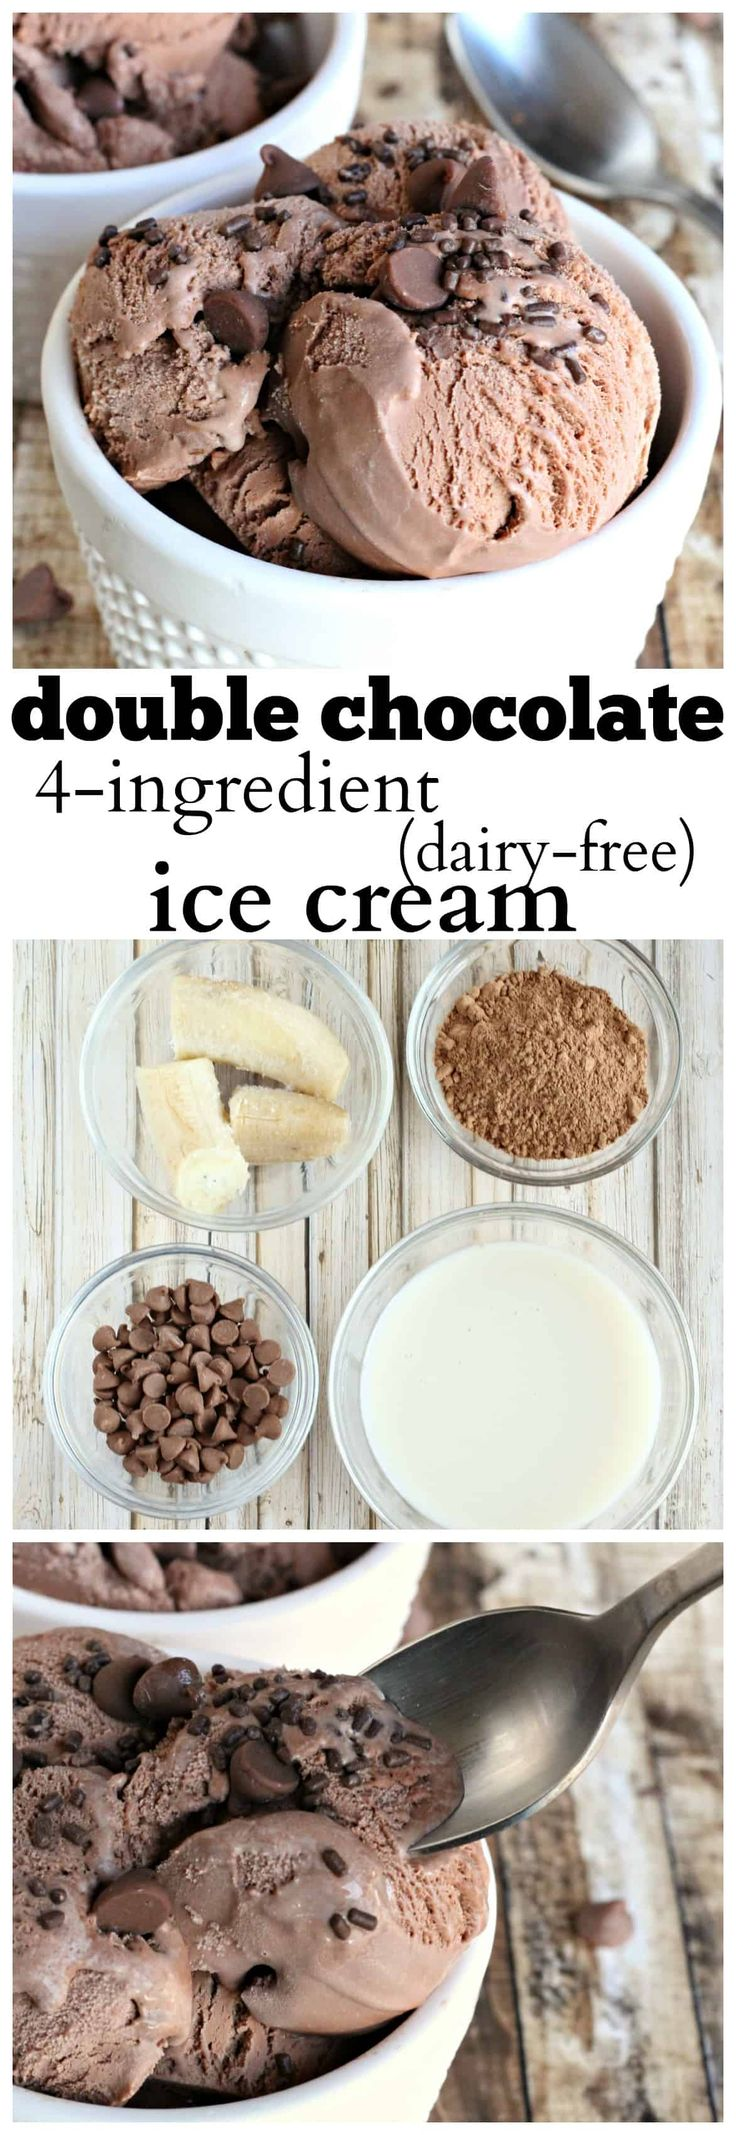 Double Chocolate, dairy-free ice cream, made with only 4 ingredients.A rich chocolate, almond milk ice cream treat for those avoiding dairy.